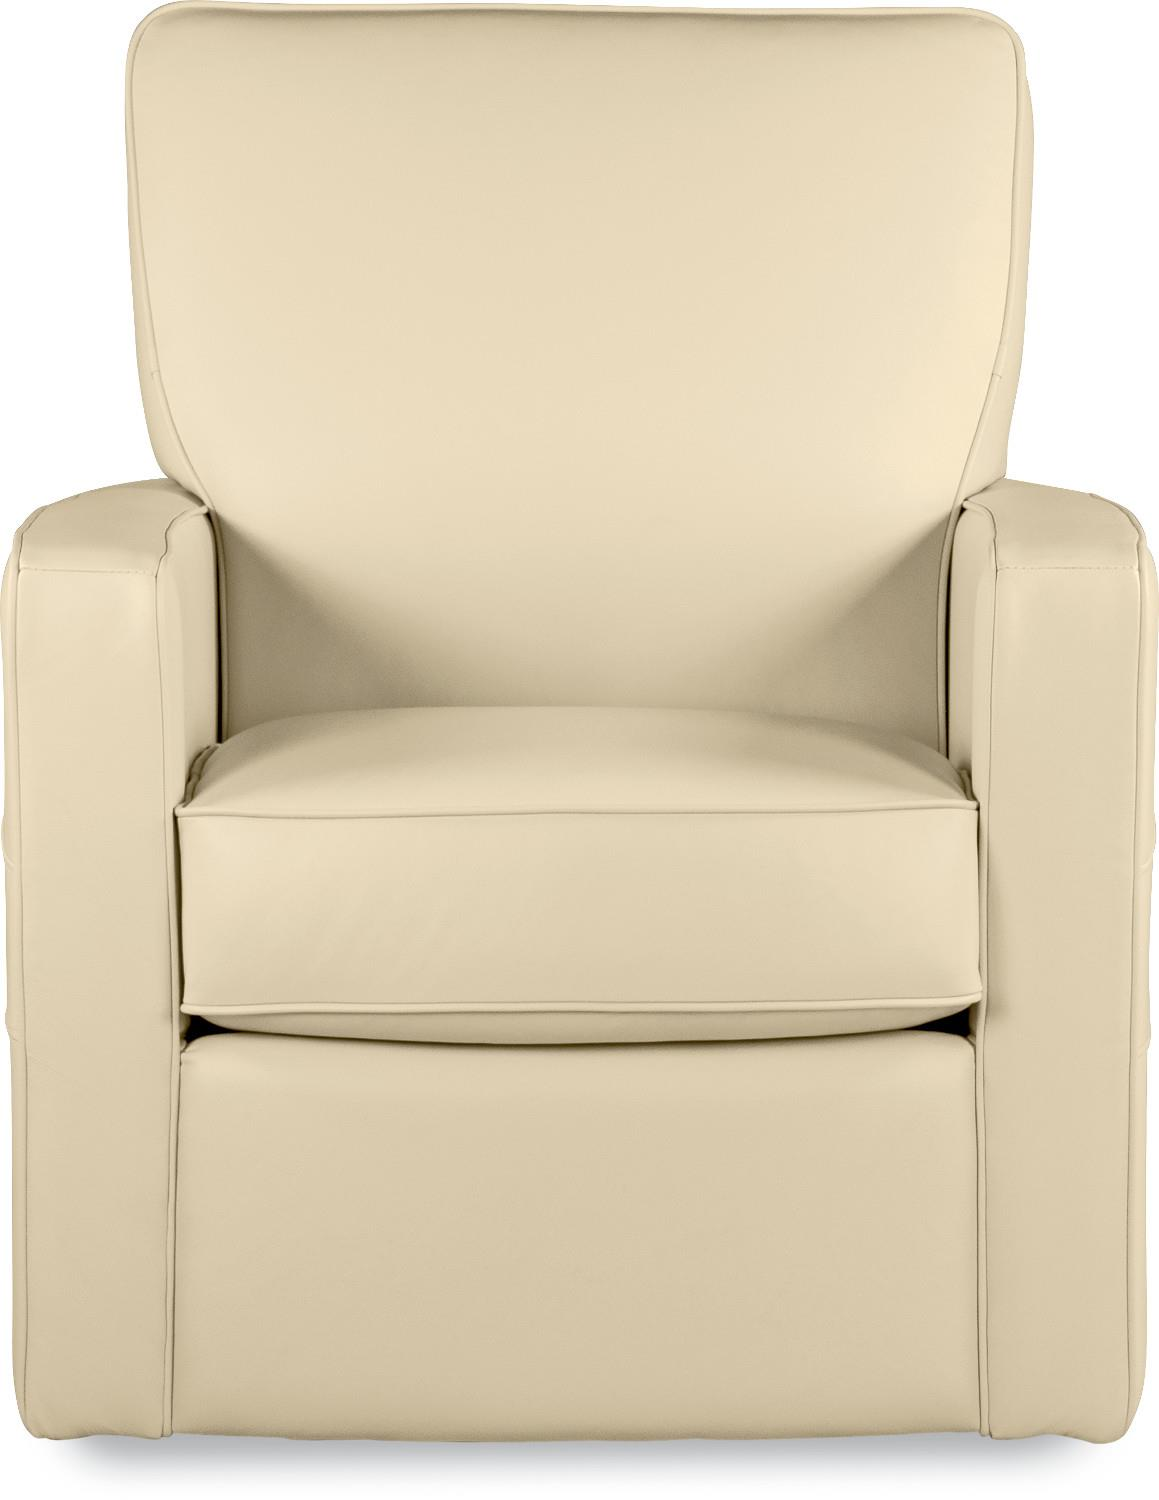 Chairs Midtown Contemporary Swivel Glider Chair by La Z